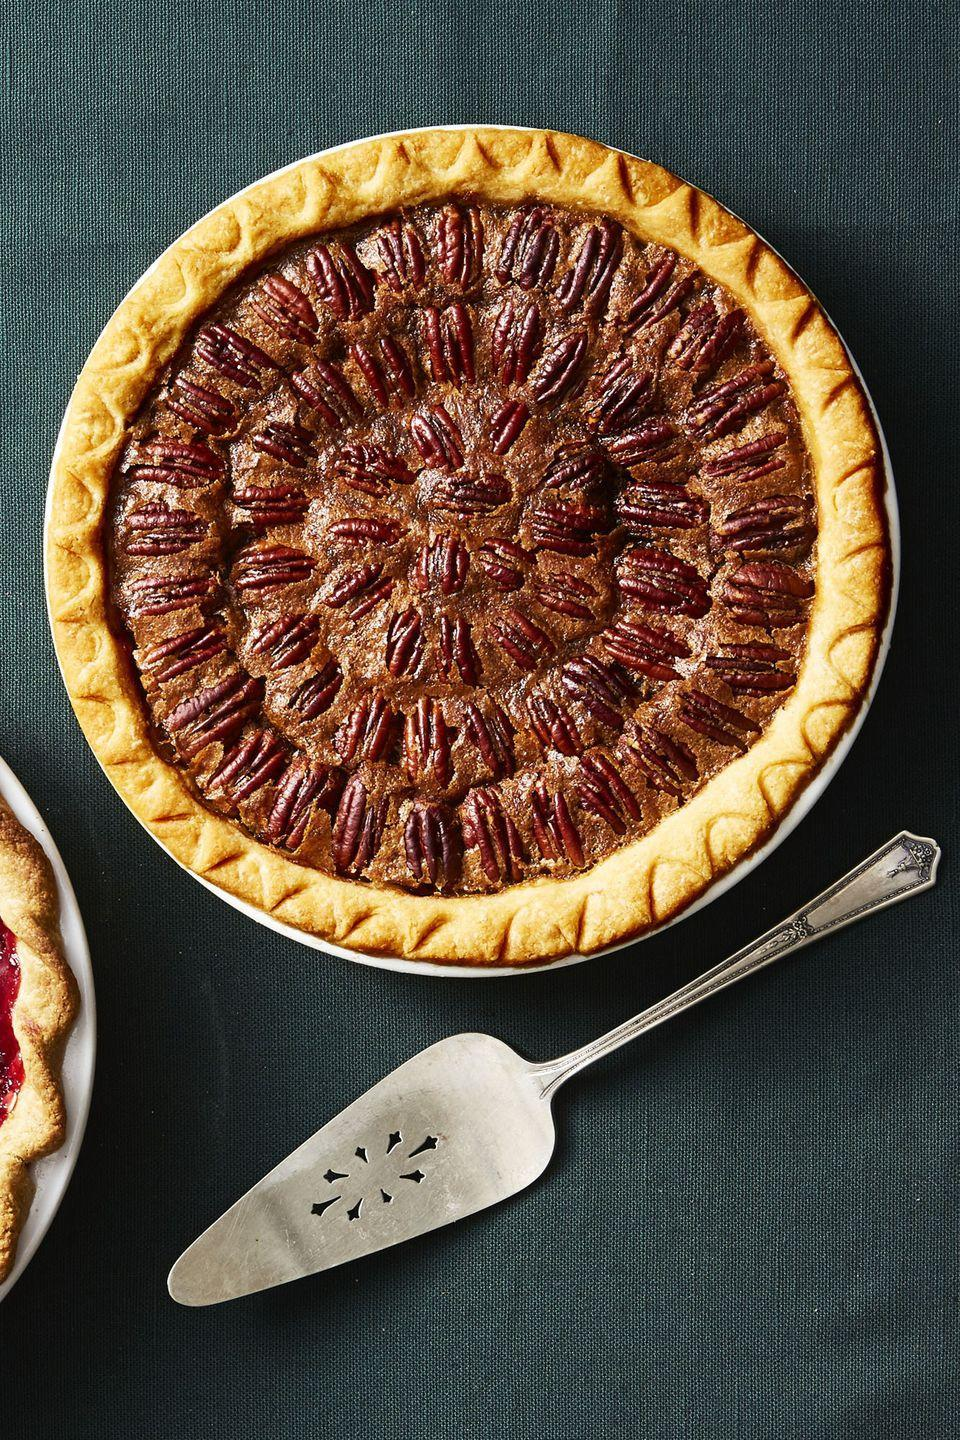 "<p>Looking for a pecan pie recipe without corn syrup? Our brown sugar-maple syrup version is sticky, sweet, and irresistible.</p><p><em><a href=""https://www.goodhousekeeping.com/food-recipes/a10478/brown-sugar-pecan-pie-recipe-ghk1110/"" rel=""nofollow noopener"" target=""_blank"" data-ylk=""slk:Get the recipe for Brown Sugar Pecan Pie »"" class=""link rapid-noclick-resp"">Get the recipe for Brown Sugar Pecan Pie »</a></em></p><p><strong>RELATED:</strong> <a href=""https://www.goodhousekeeping.com/health/diet-nutrition/a47166/health-benefits-of-pecans/"" rel=""nofollow noopener"" target=""_blank"" data-ylk=""slk:9 Health Benefits of Pecans That'll Make You Go Nuts"" class=""link rapid-noclick-resp"">9 Health Benefits of Pecans That'll Make You Go Nuts</a><br></p>"